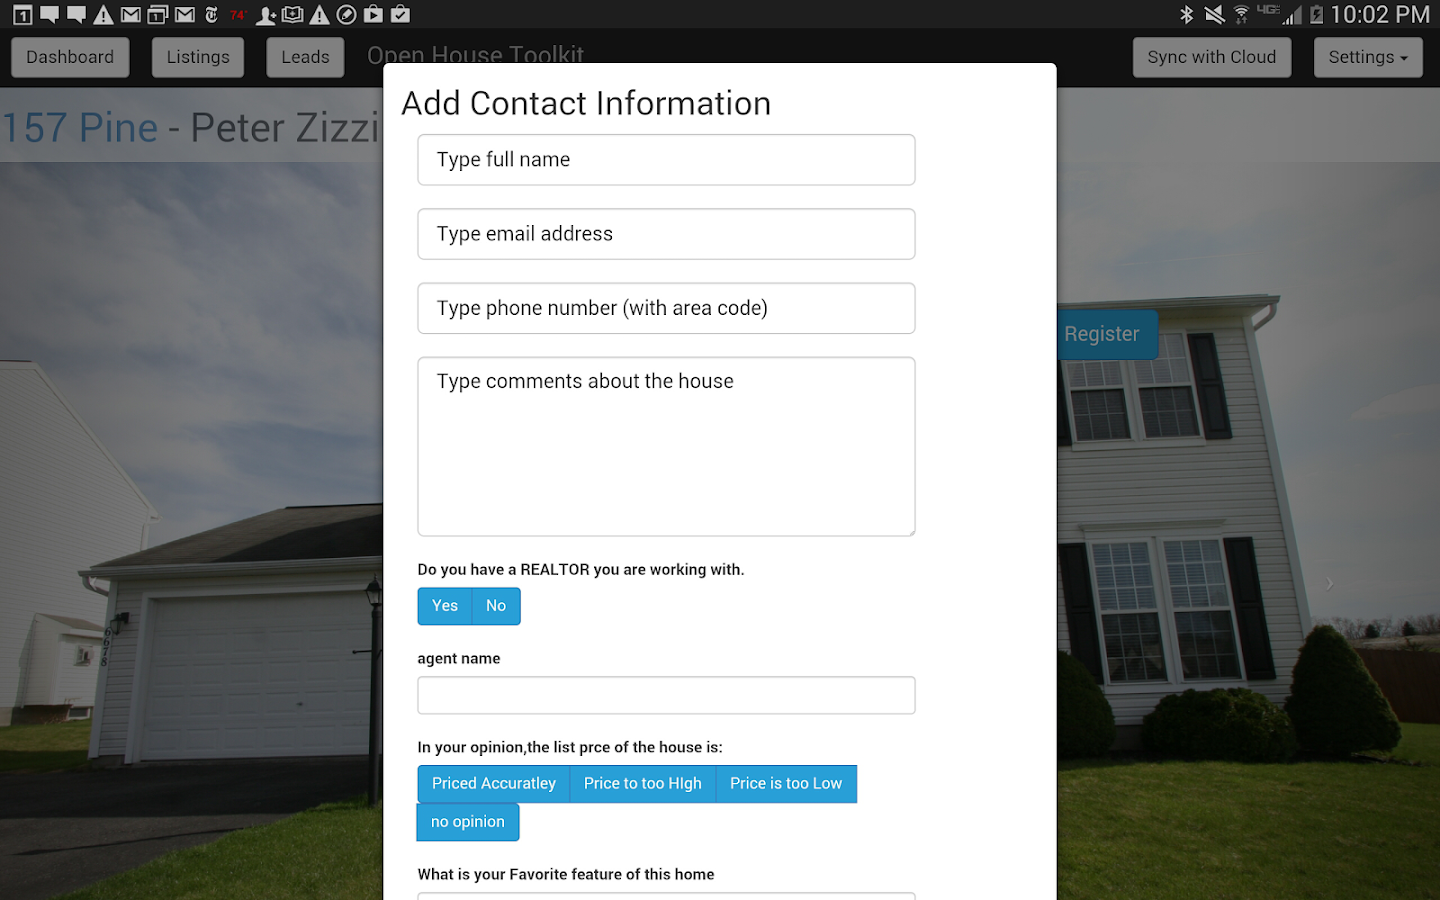 Open House ToolKit-Real Estate- screenshot